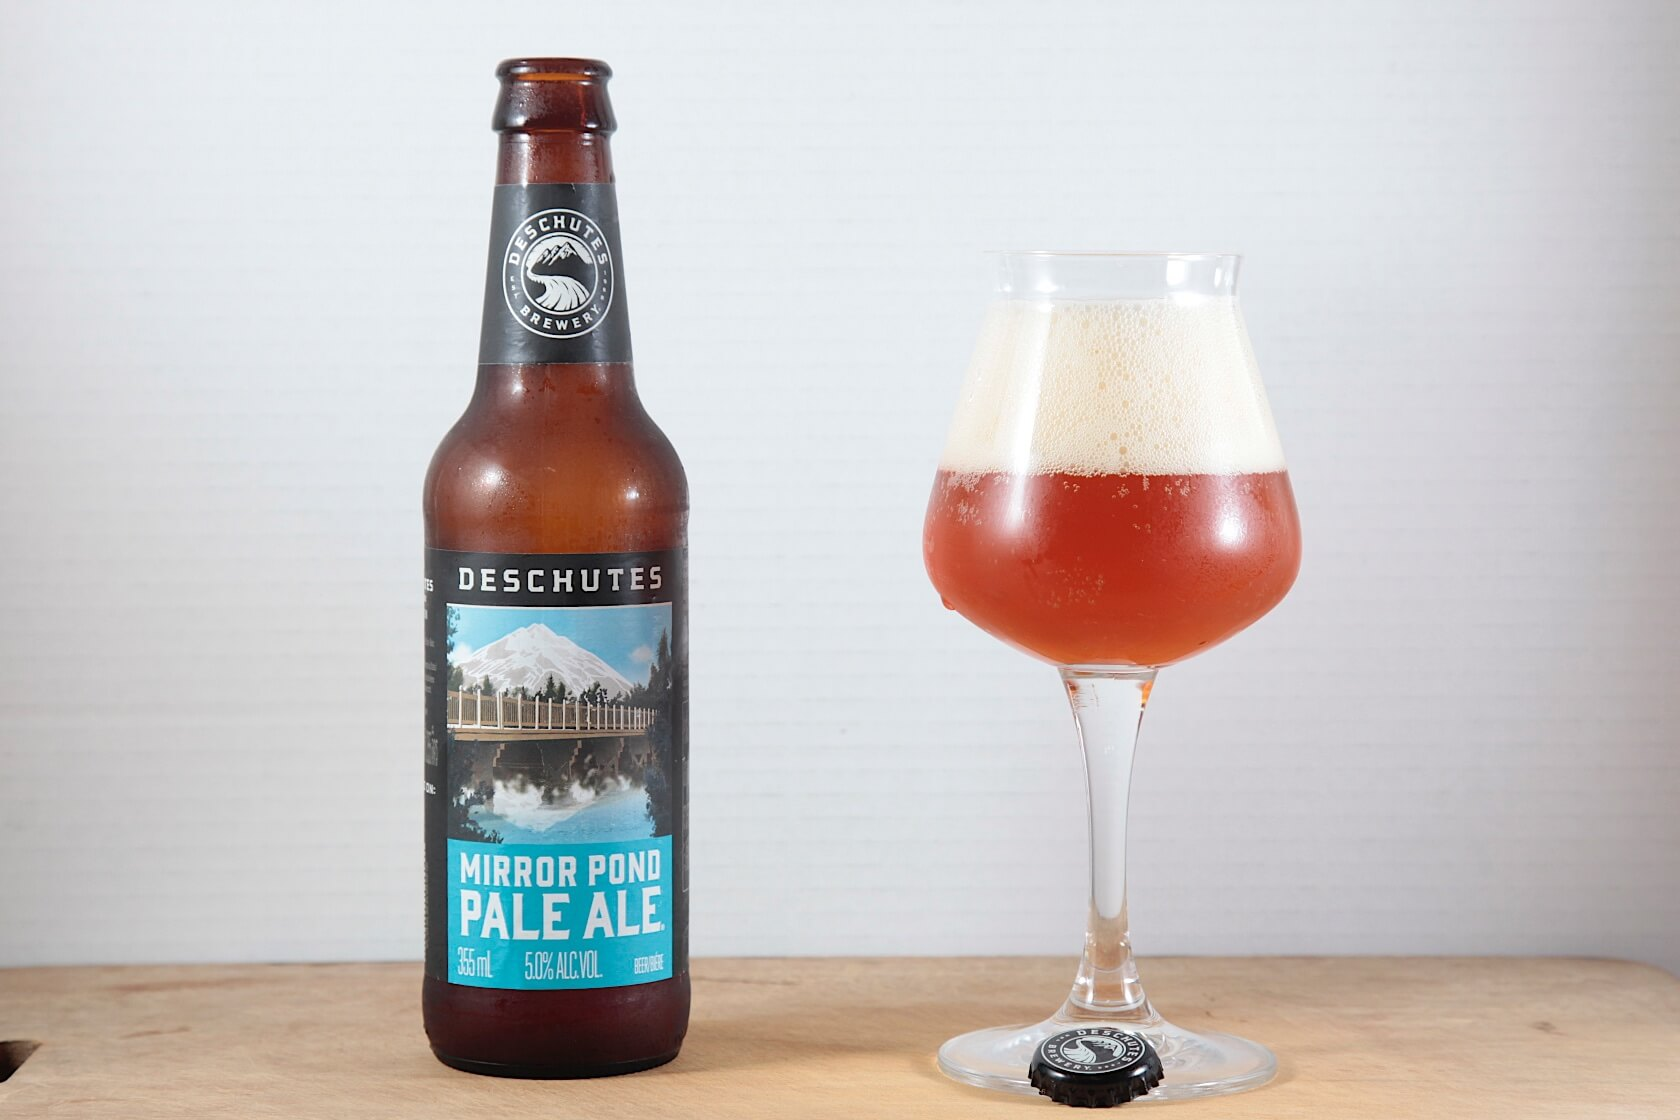 @Deschutes Mirror Pond Pale Ale